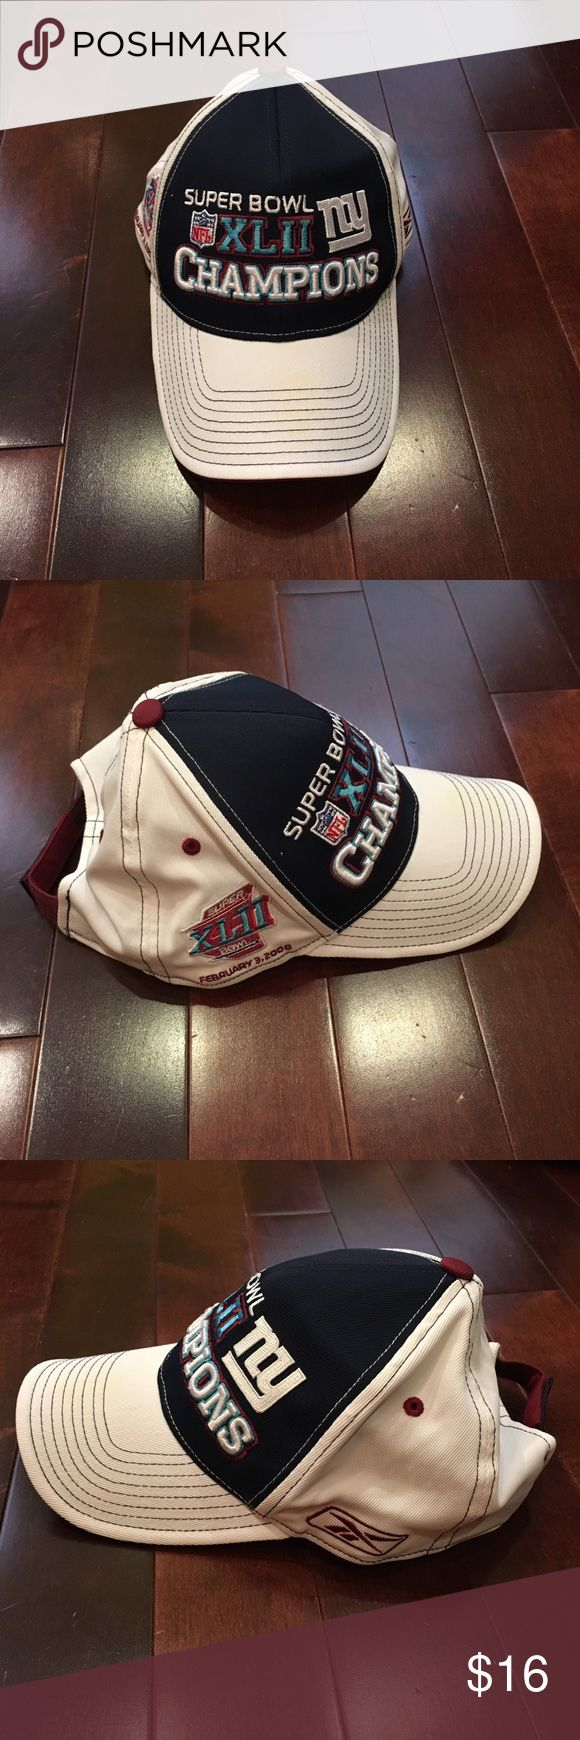 New York Giants Superbowl Champions Hat Good condition!  Has minor spots on the front top brim.  Adjustable Velcro. Reebok Accessories Hats